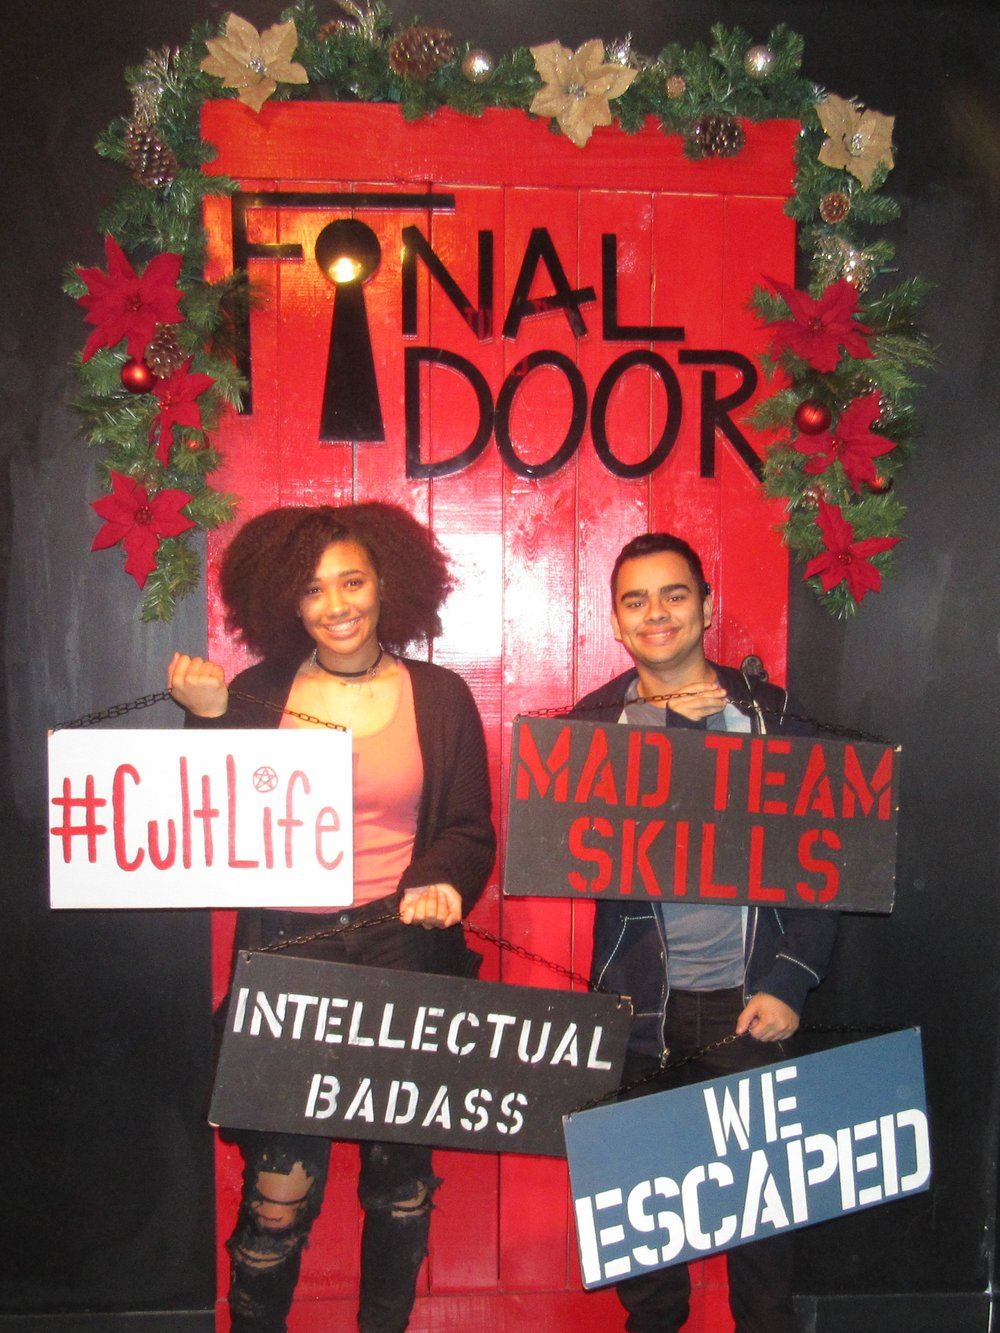 the-final-door-escape-room-columbia-sc-nov-28-17-01.JPG